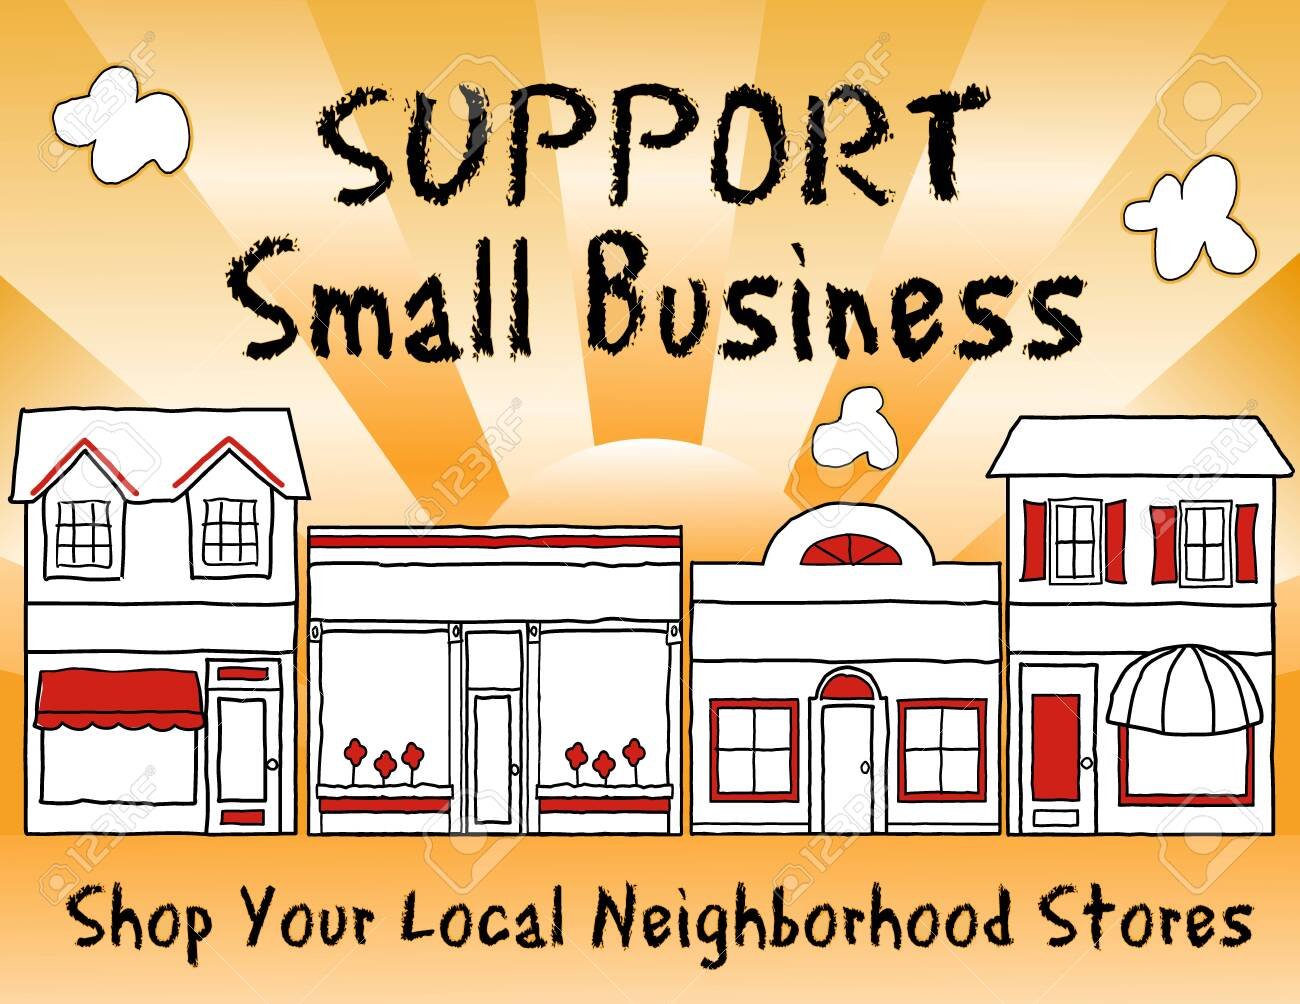 Support Small Business! Shop local, buy local! Shop at neighborhood stores, brick and mortar, mom and pop merchants, community and main street entrepreneurs. Gold background. - 148963934